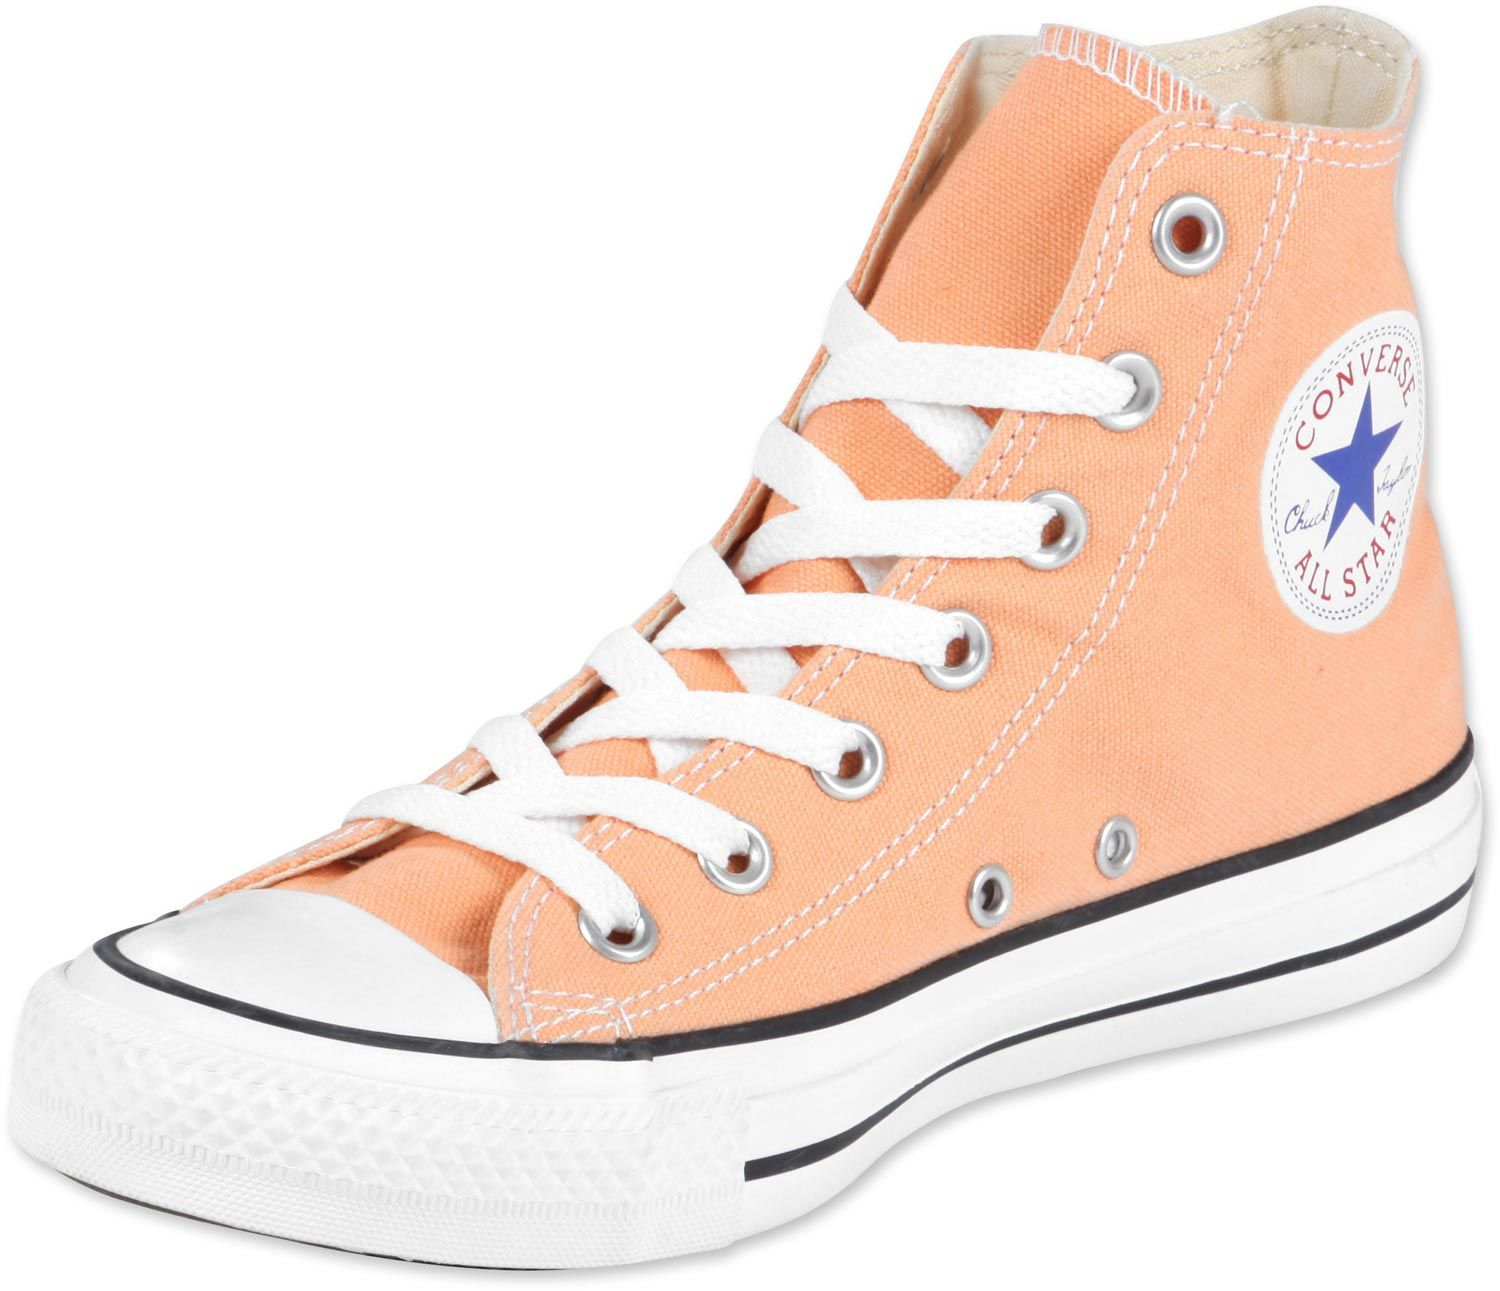 chuck taylor fresh colors converse hightop shoes shoes pinterest chuck taylors snow and discount sites - All Converse Colors